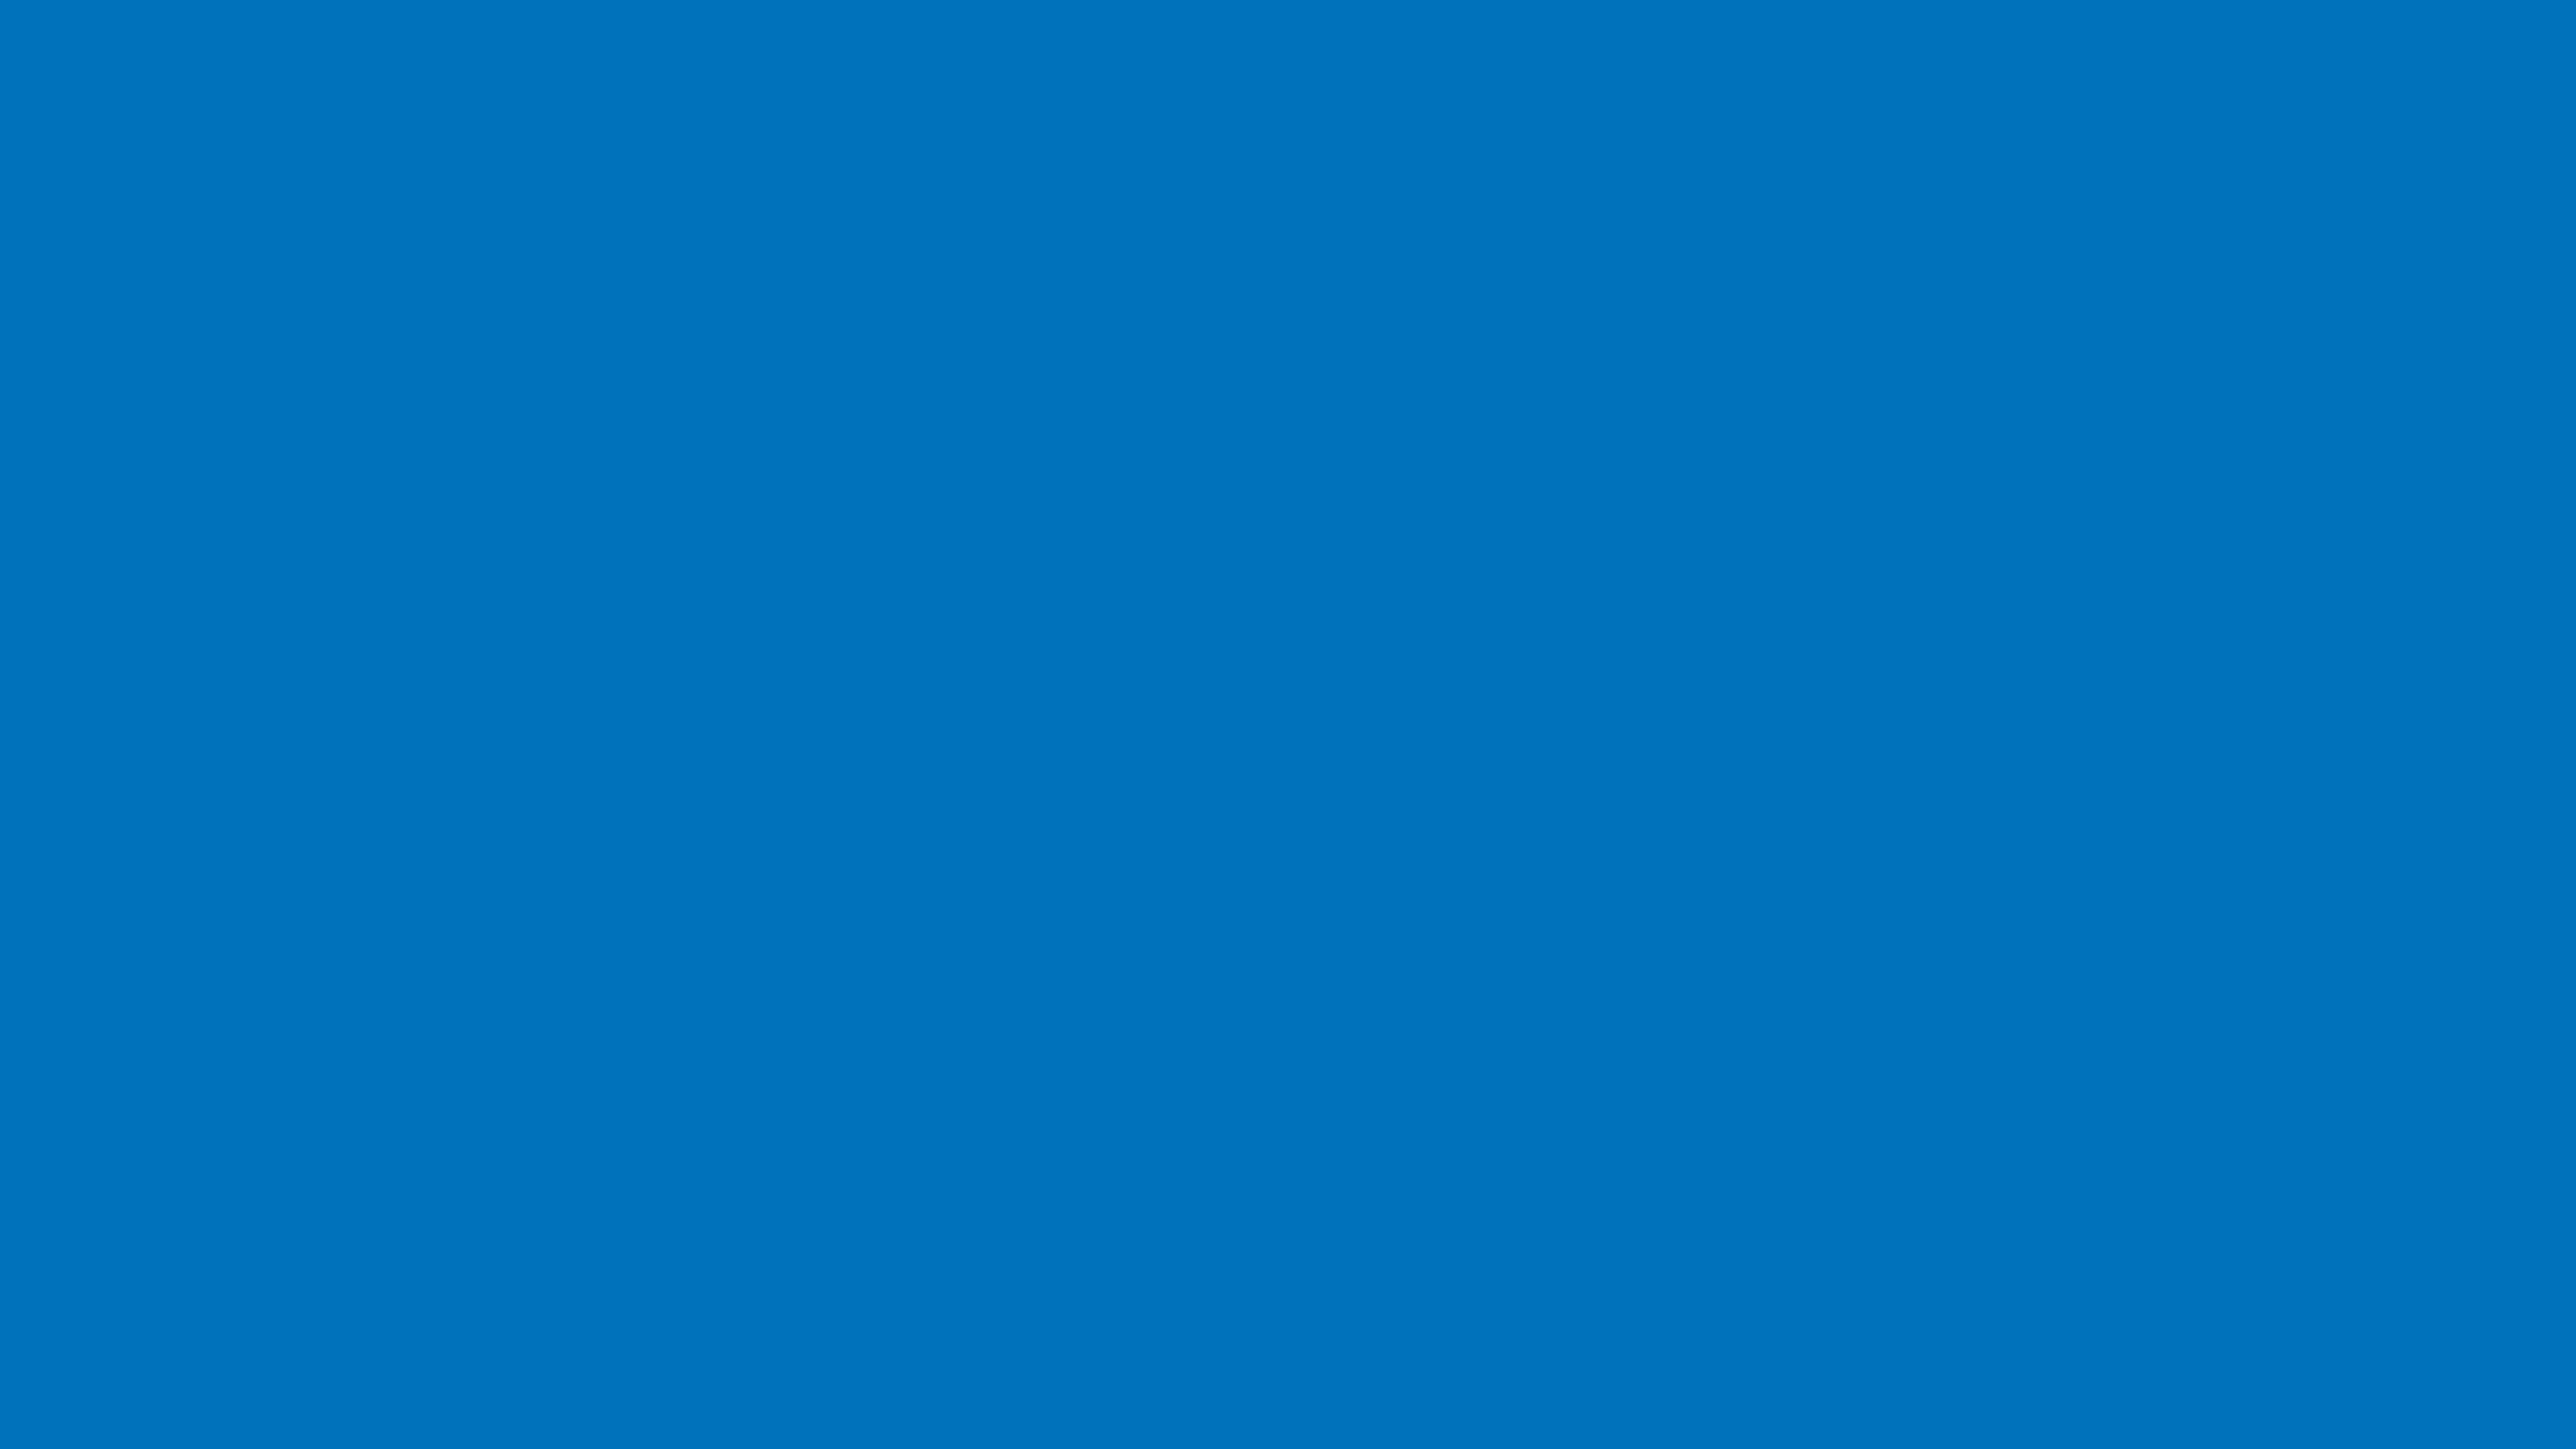 4096x2304 French Blue Solid Color Background